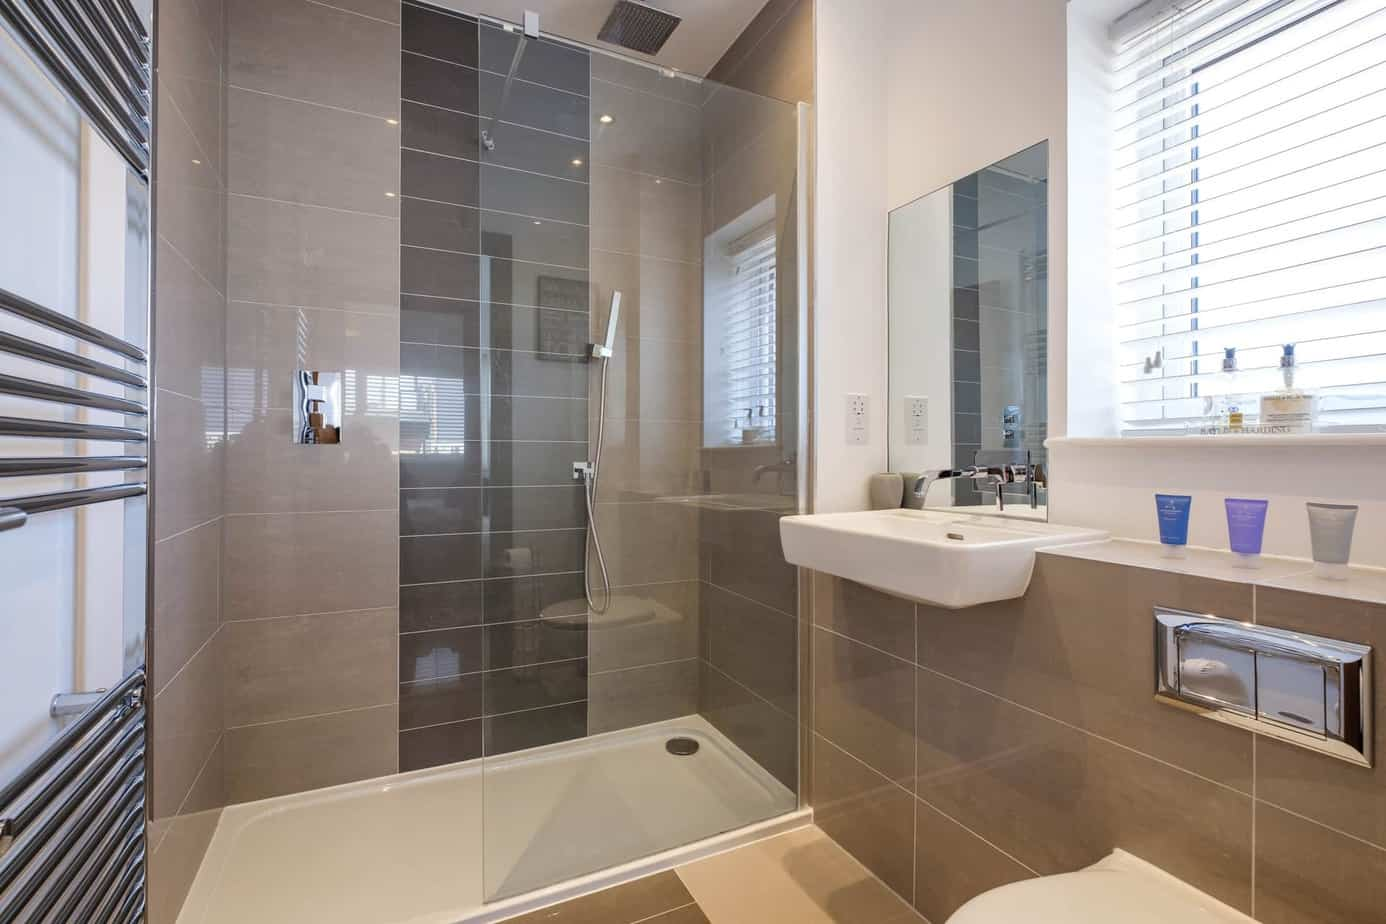 Tailored Stays grand central cambridge serviced apartment master bathroom